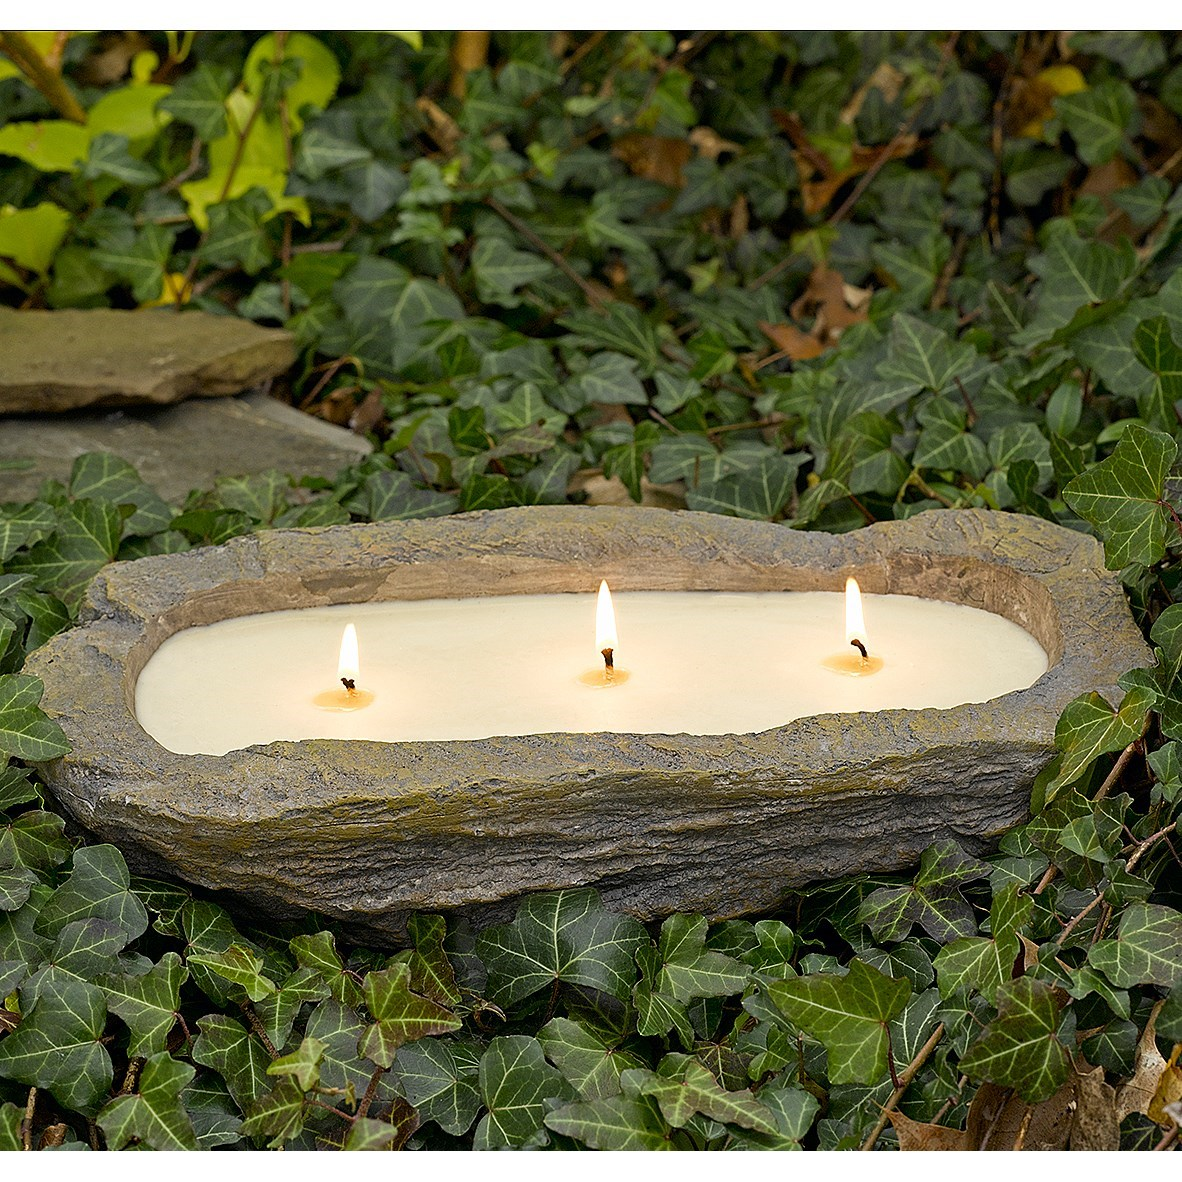 Northern lights home and garden 3 wick rock candle 15 oz for Northern light and garden